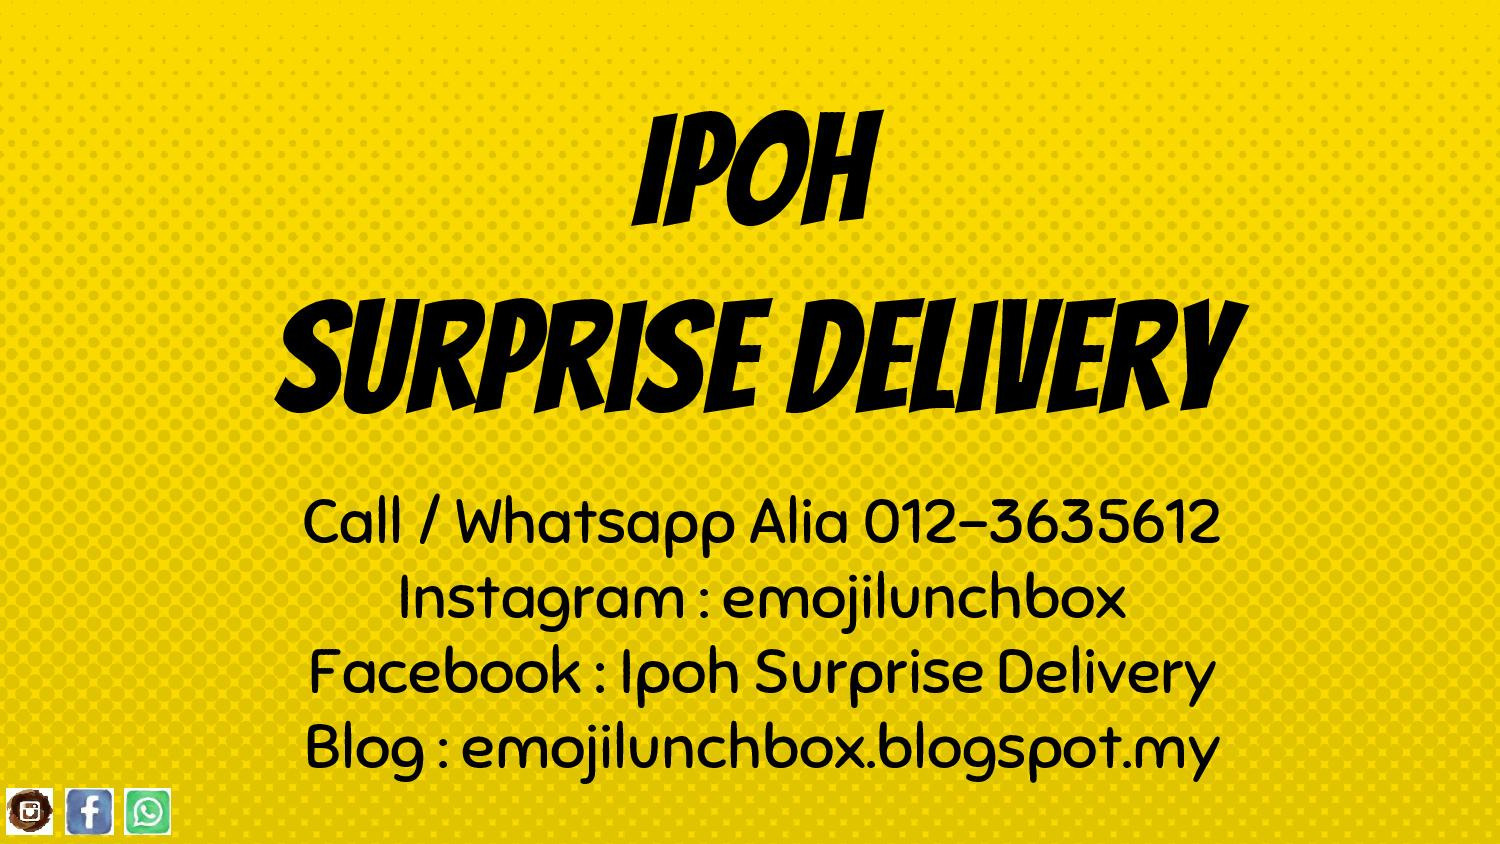 Ipoh Surprise Delivery By Emojilunchbox Budget Surprise